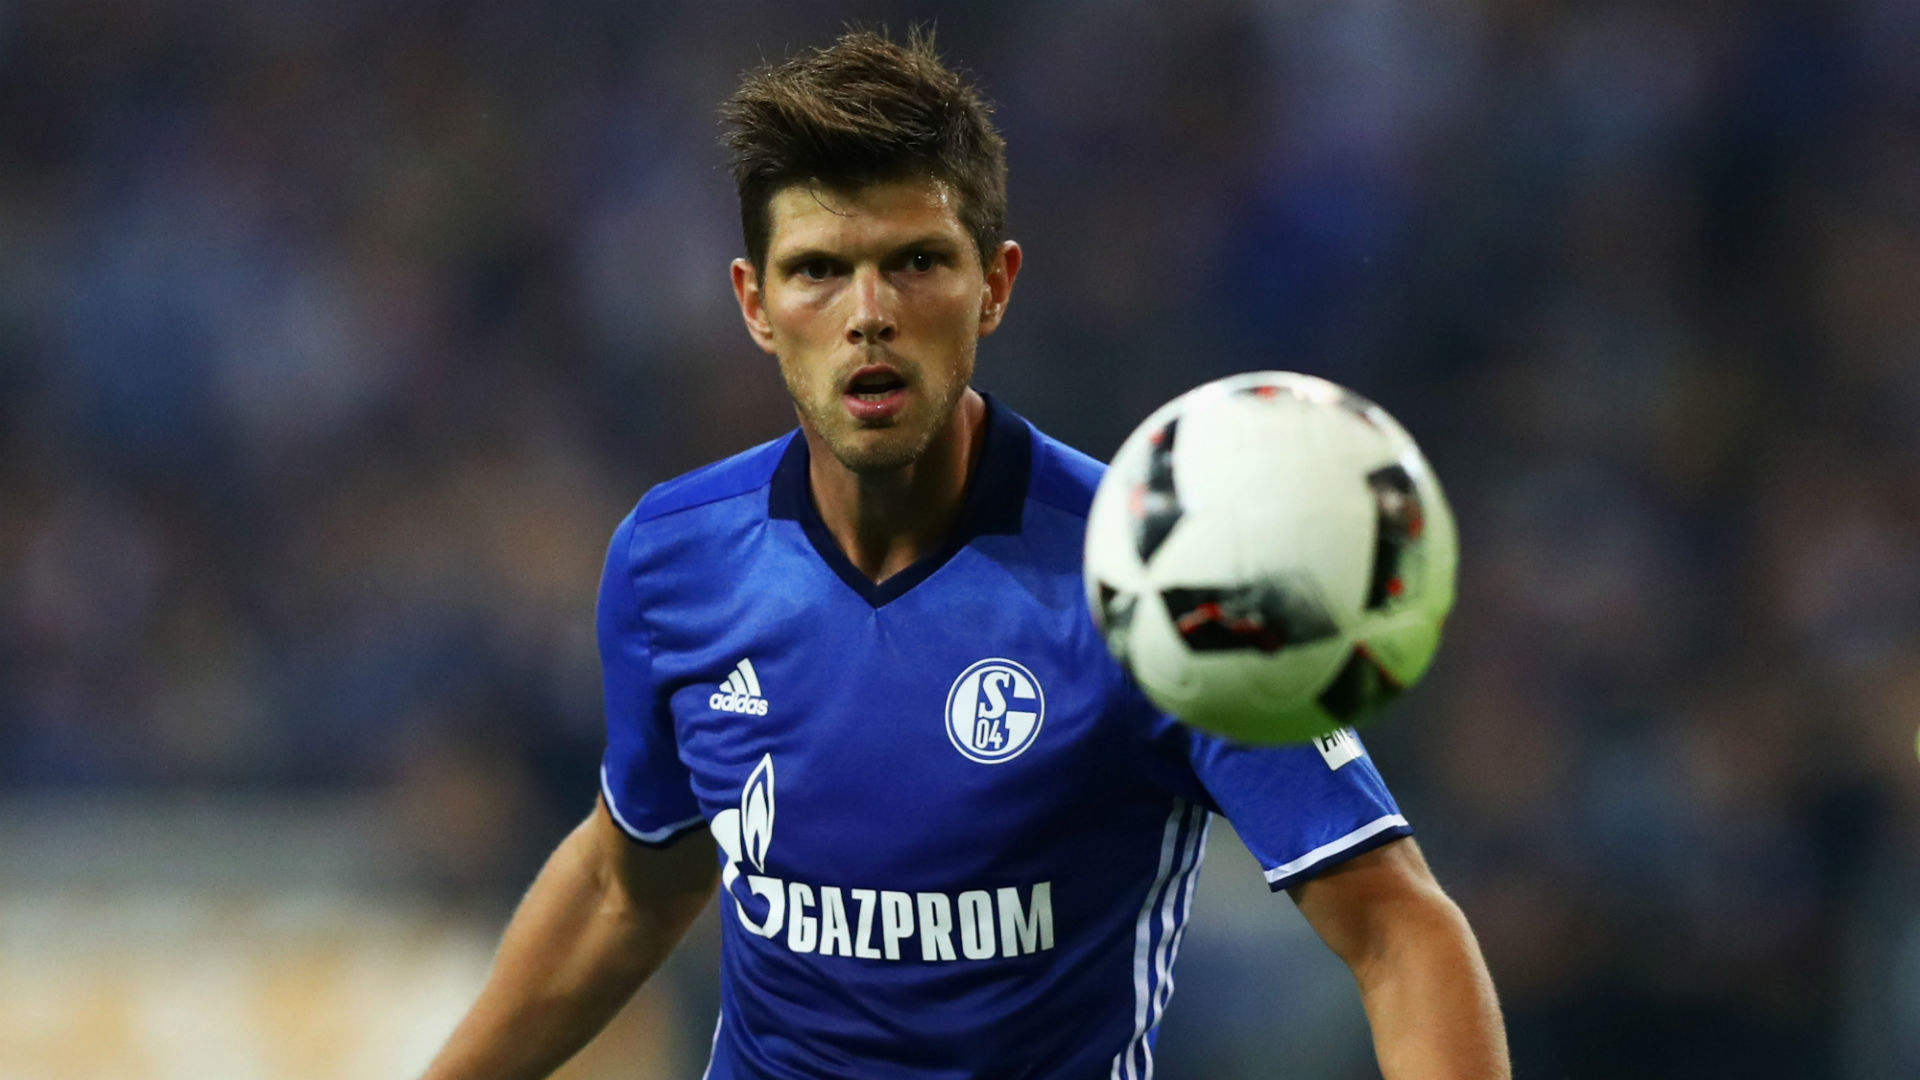 Huntelaar leaves Ajax to join Schalke survival push: 'I want to play my part!'